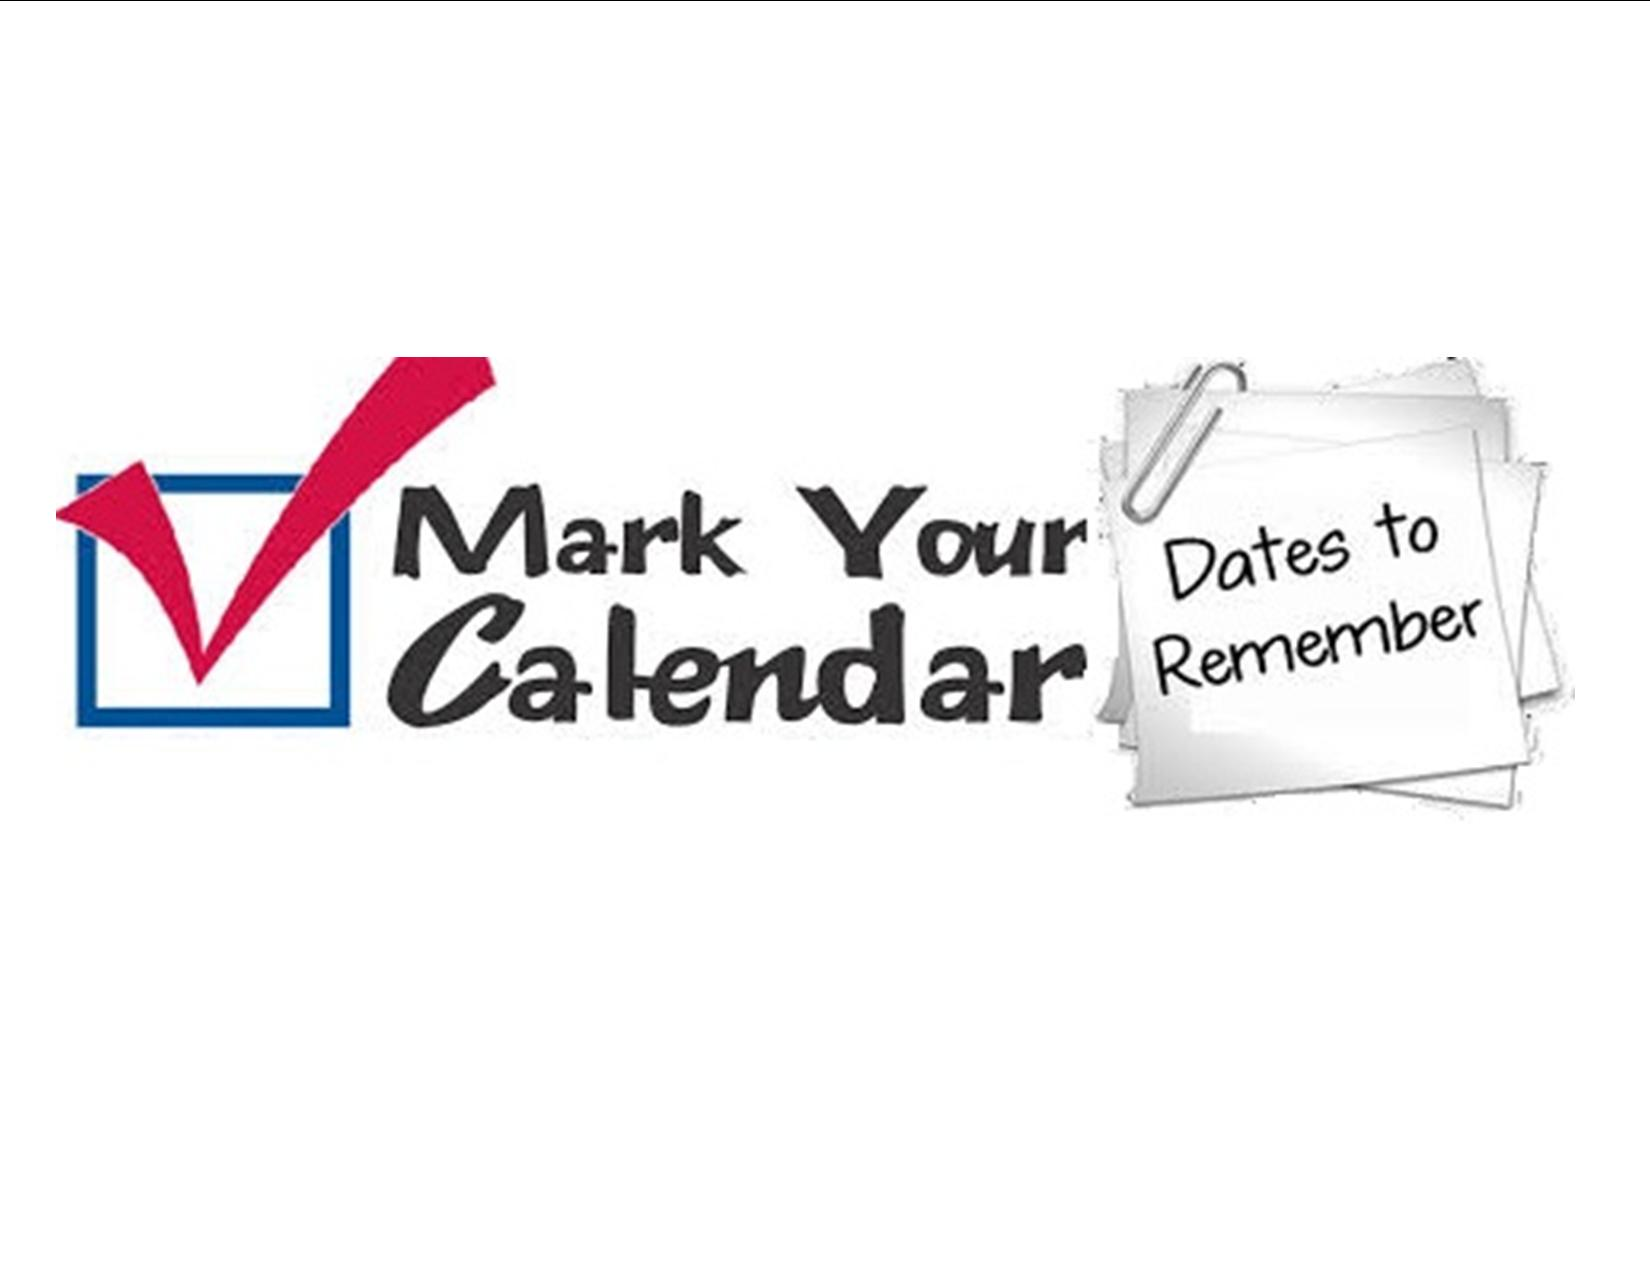 Dates to remember clipart 1 » Clipart Station.